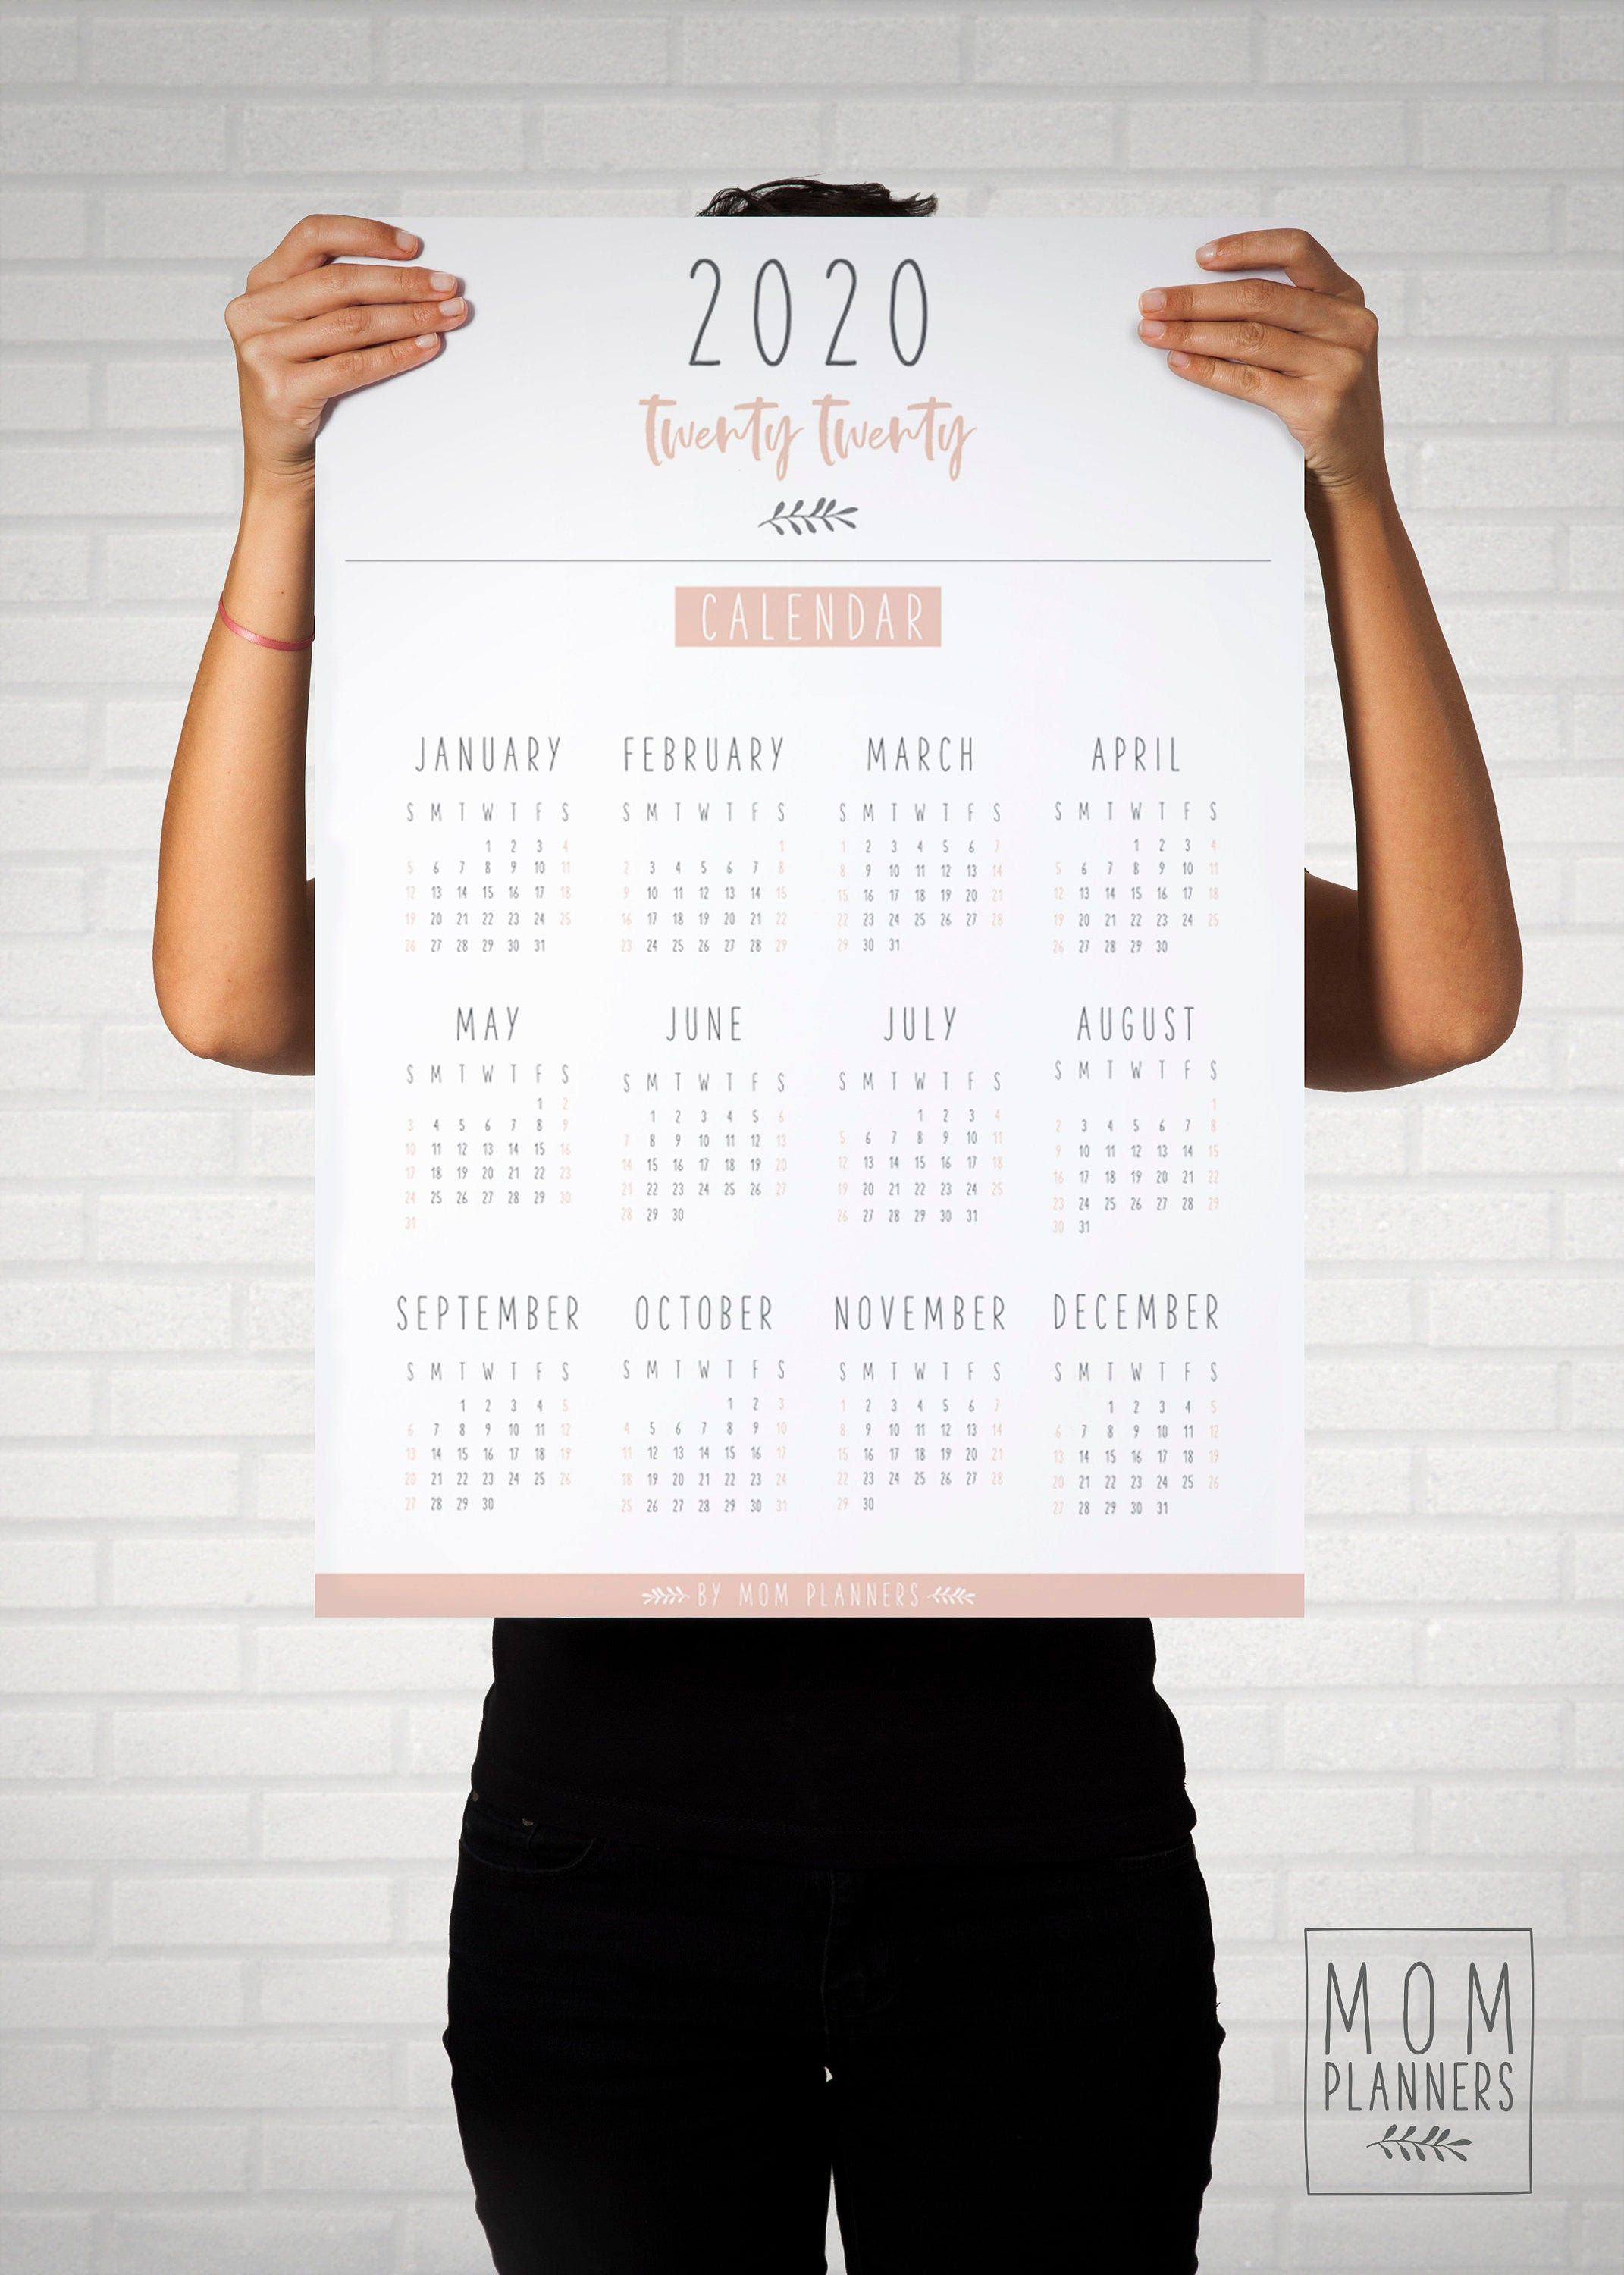 Printable 2020 Wall Calendar Poster Sizes A1 A2 A3 A4 Office Calendar Instant Download Minimalist Wall Calendar 2020 Overvie Wandkalender Kalender Wand